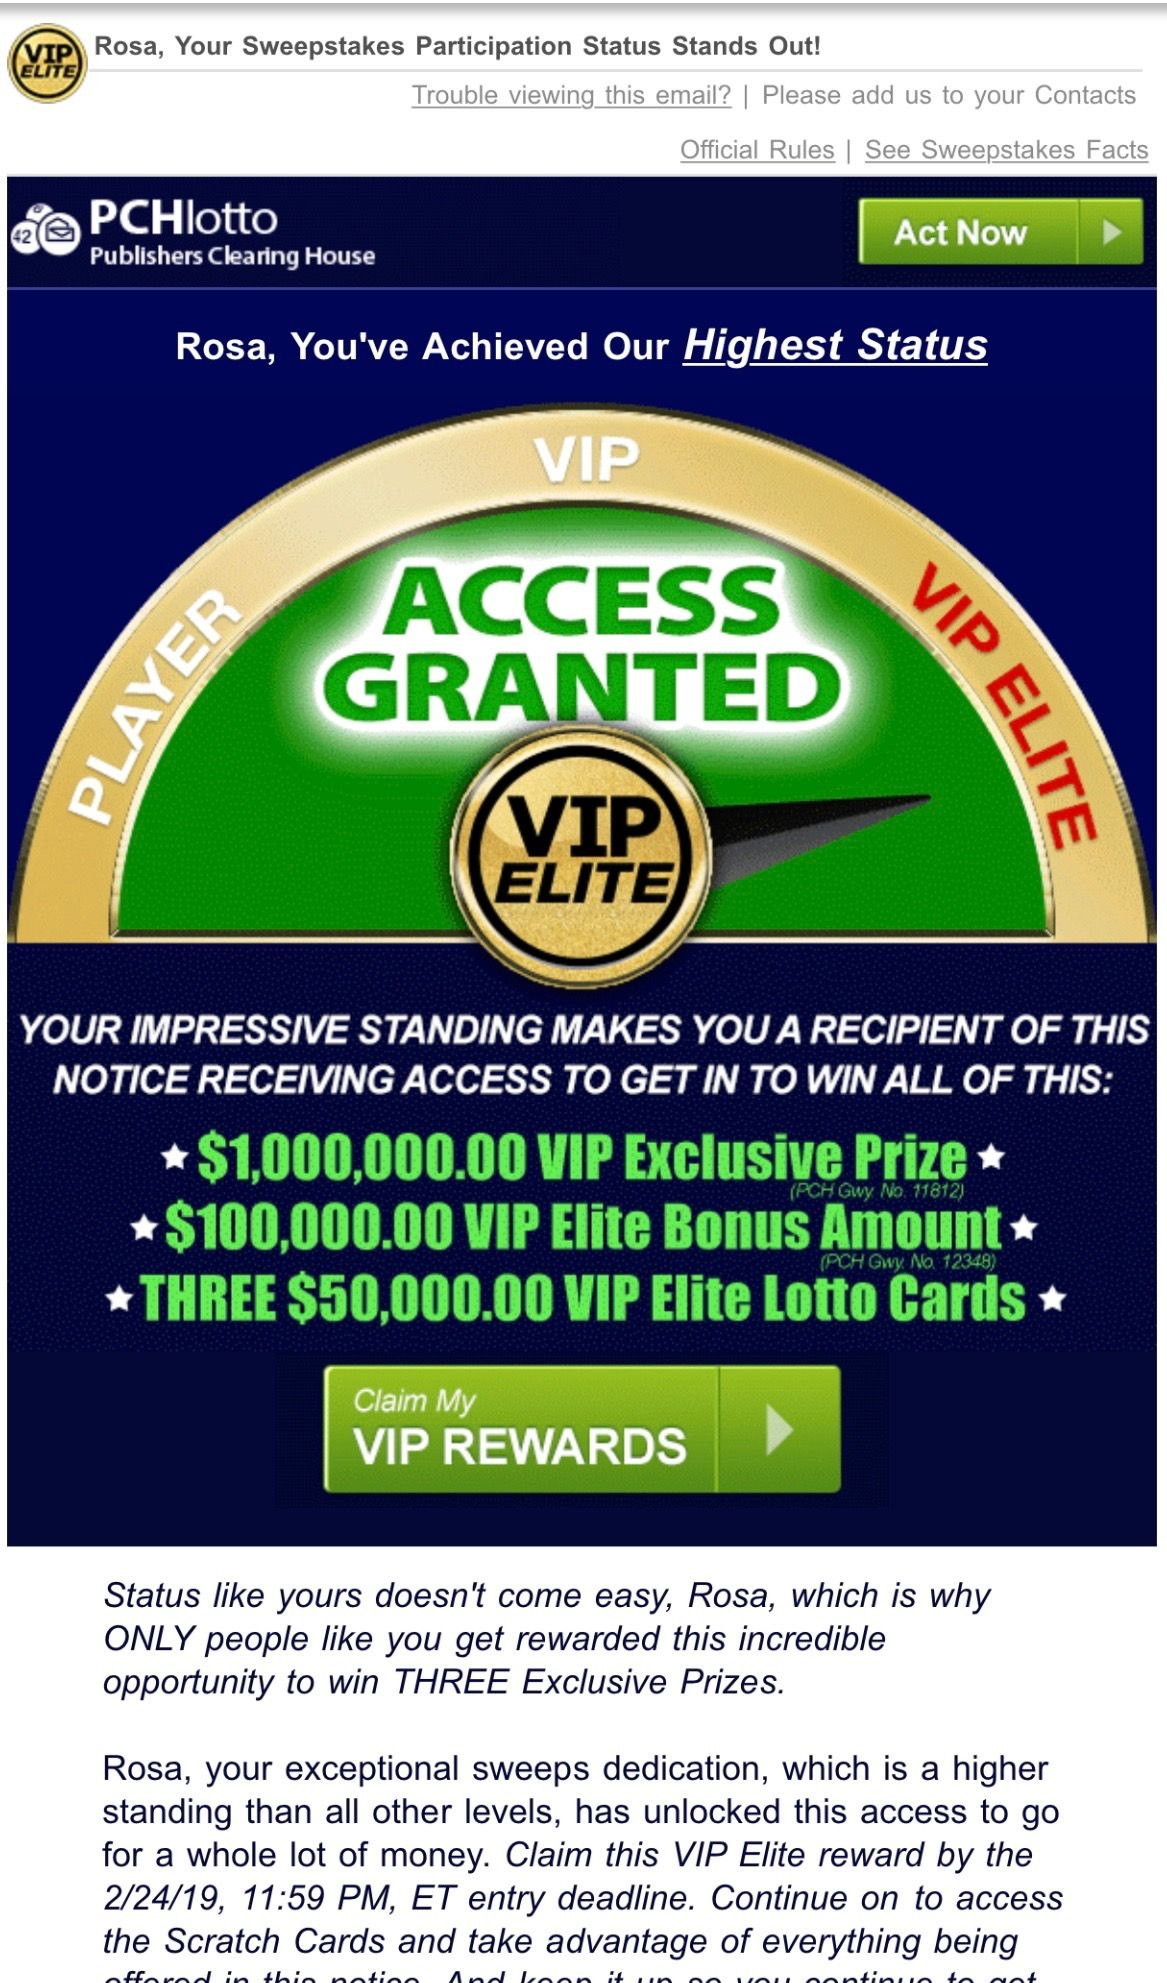 PCH VIP ELITE SWEEPSTAKES ACCESS GRANTED/I RROJAS CLAIM MY VIP